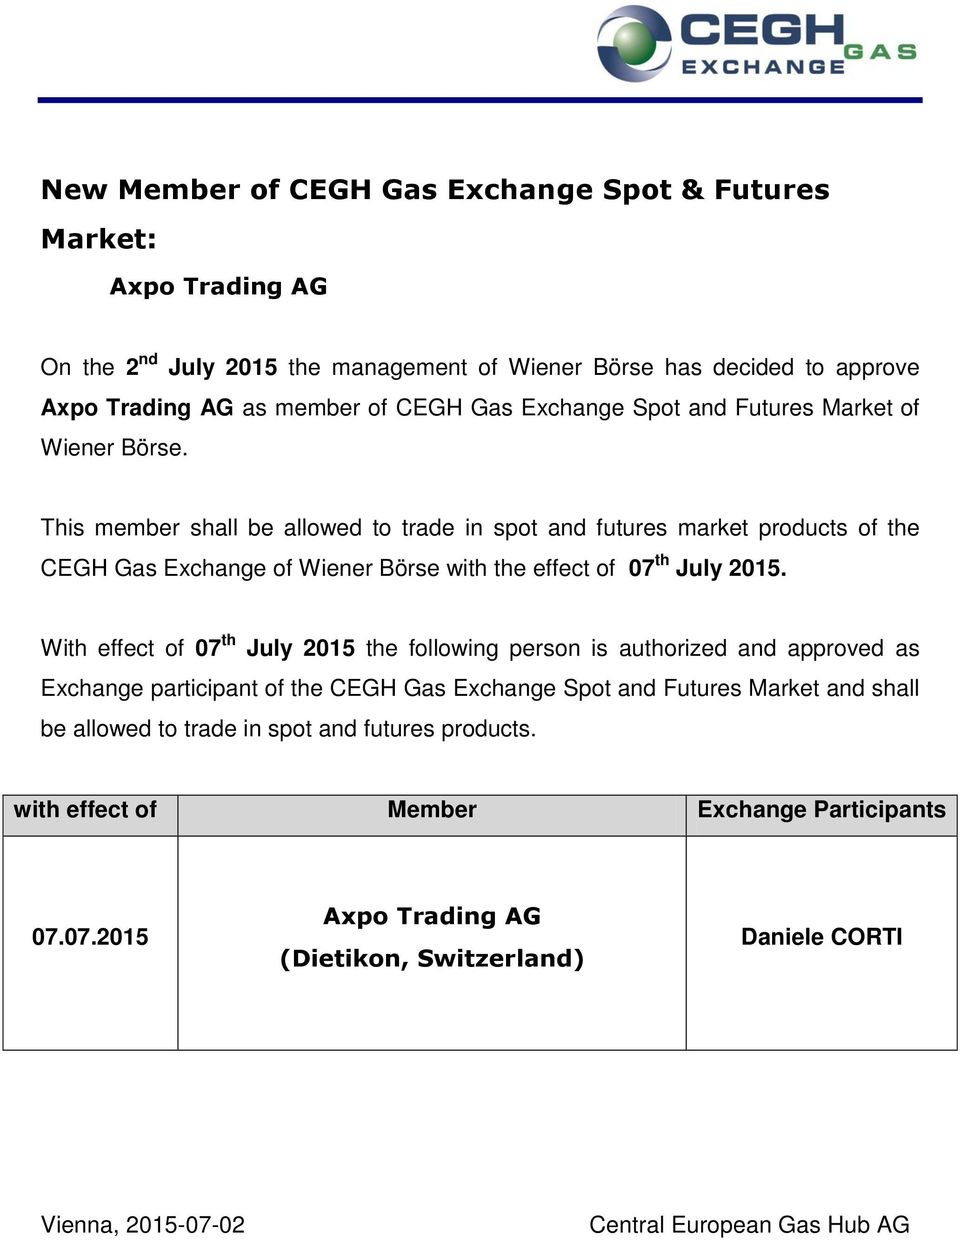 This member shall be allowed to trade in spot and futures market products of the CEGH Gas Exchange of Wiener Börse with the effect of 07 th July 2015.